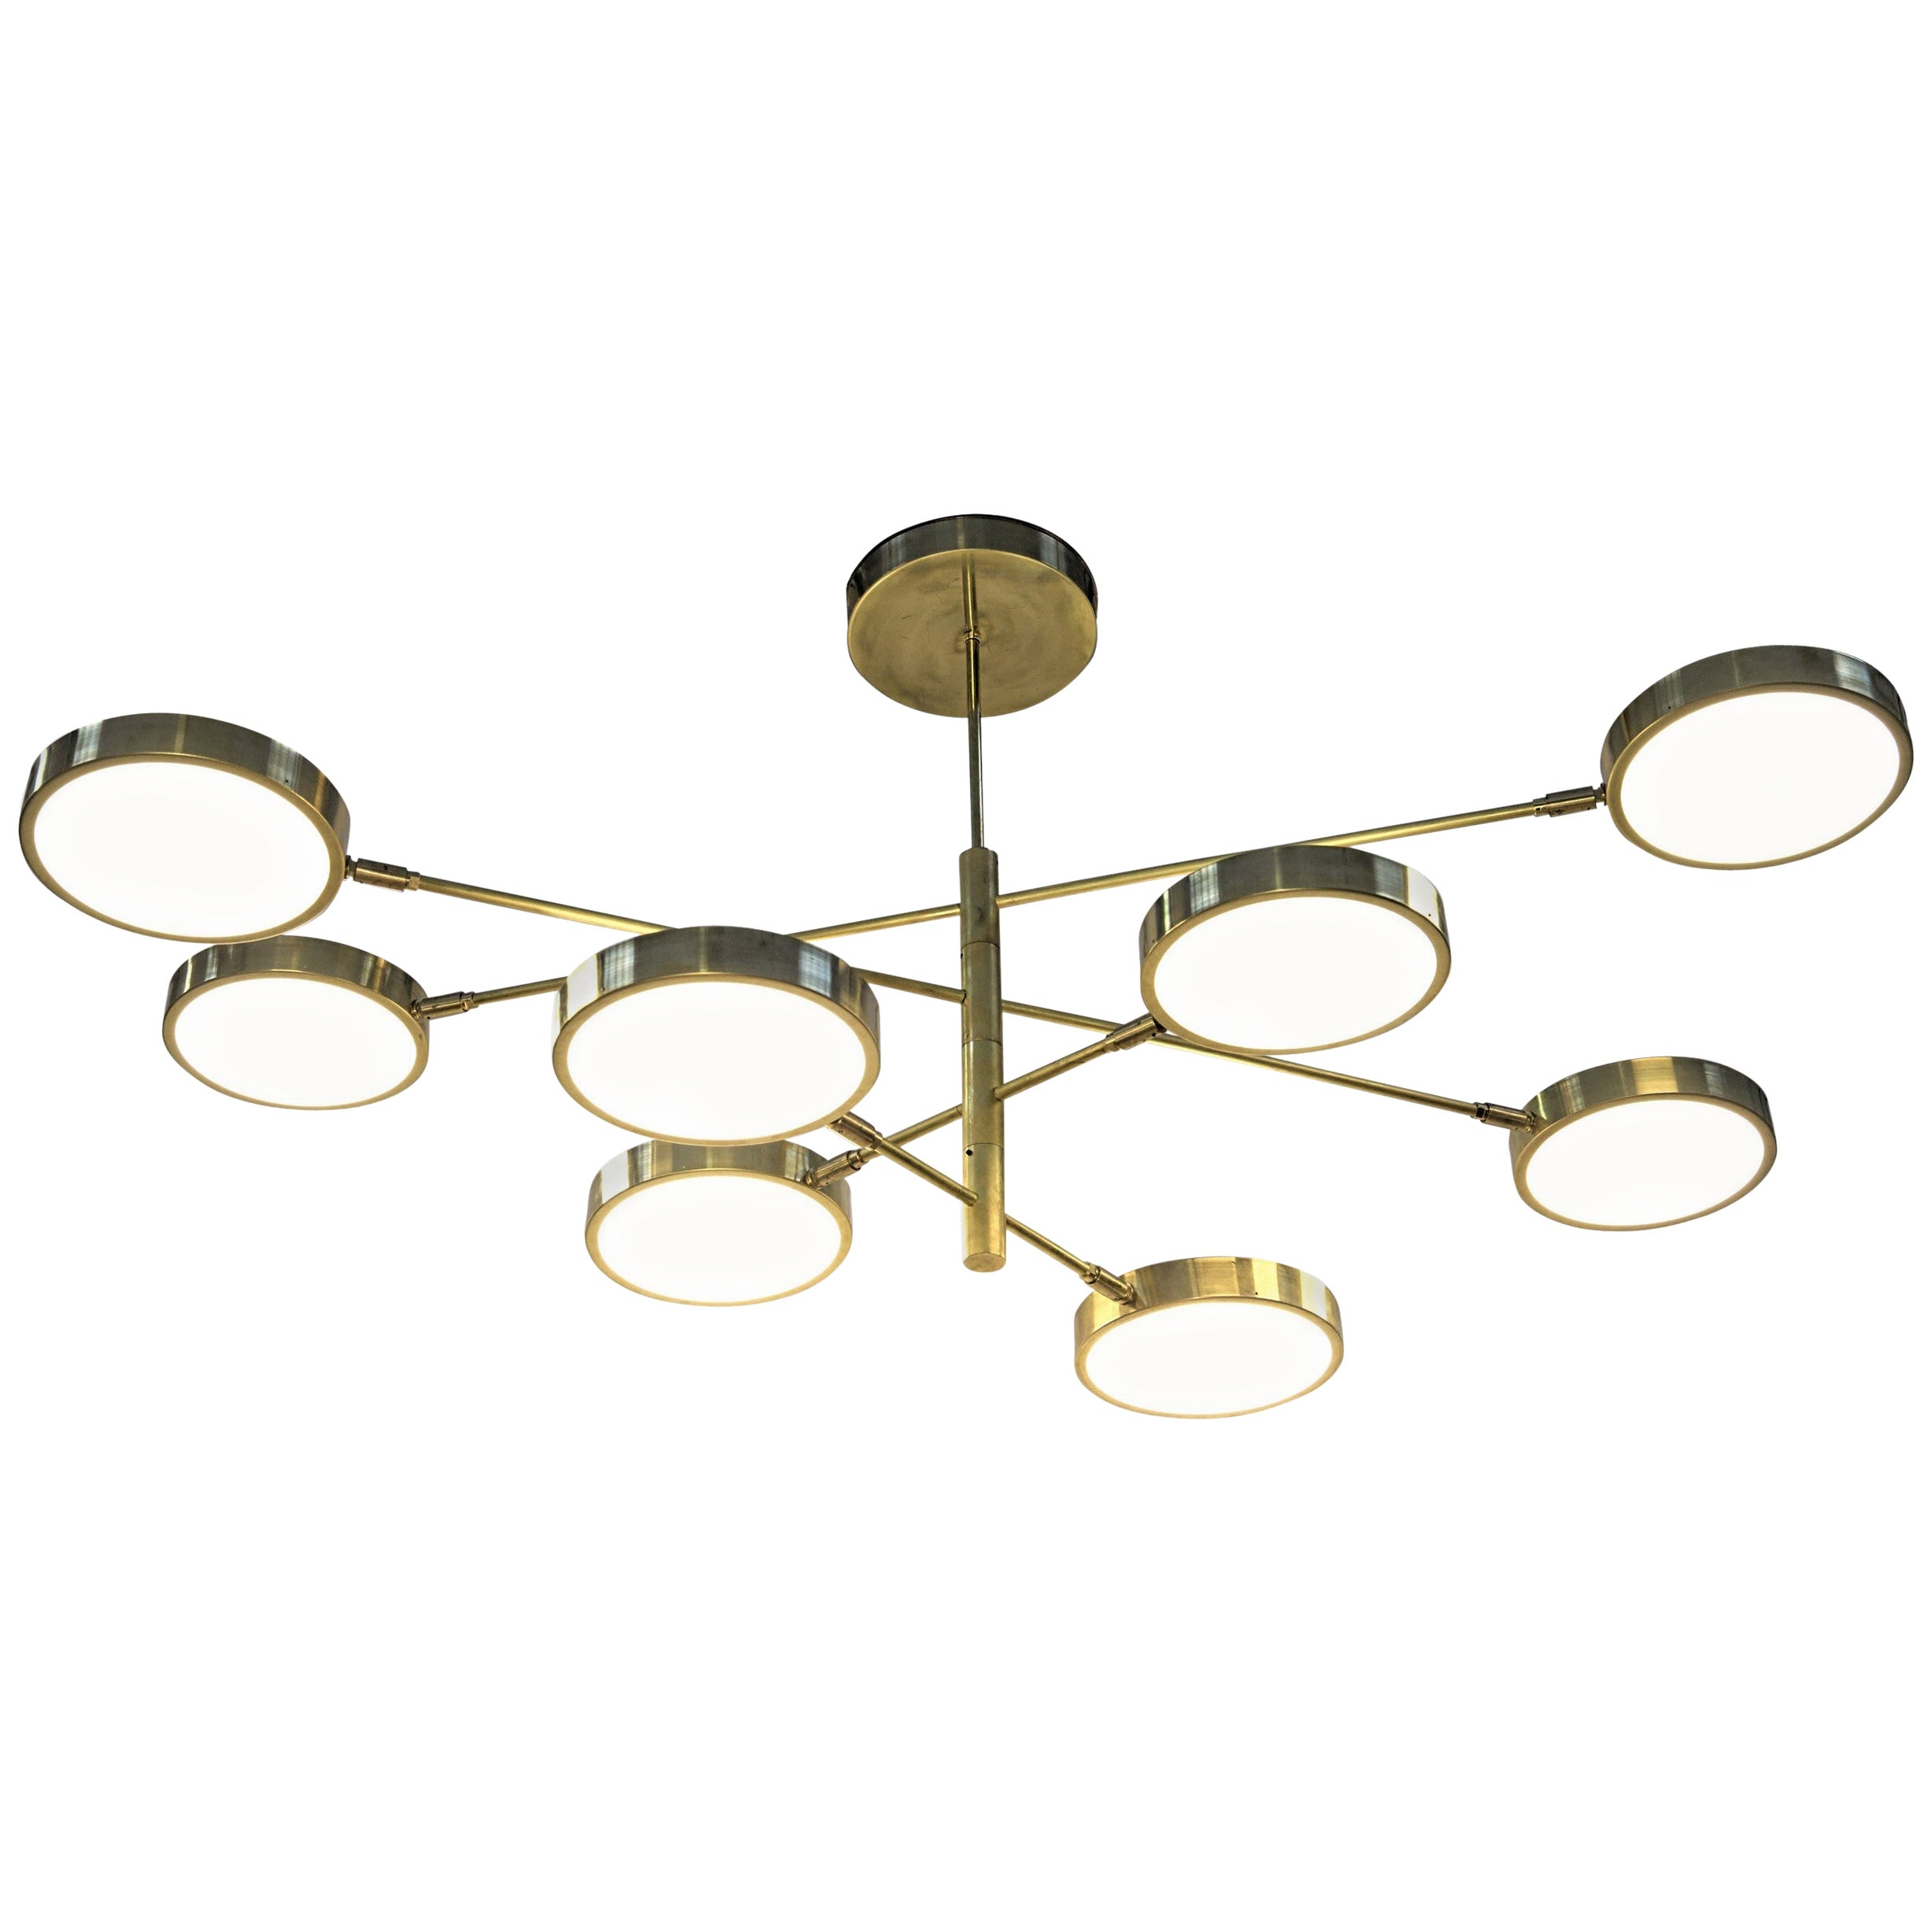 Sistema, Brass 8 Rotating Orbitale Arms Chandelier, Featured for Dining Table